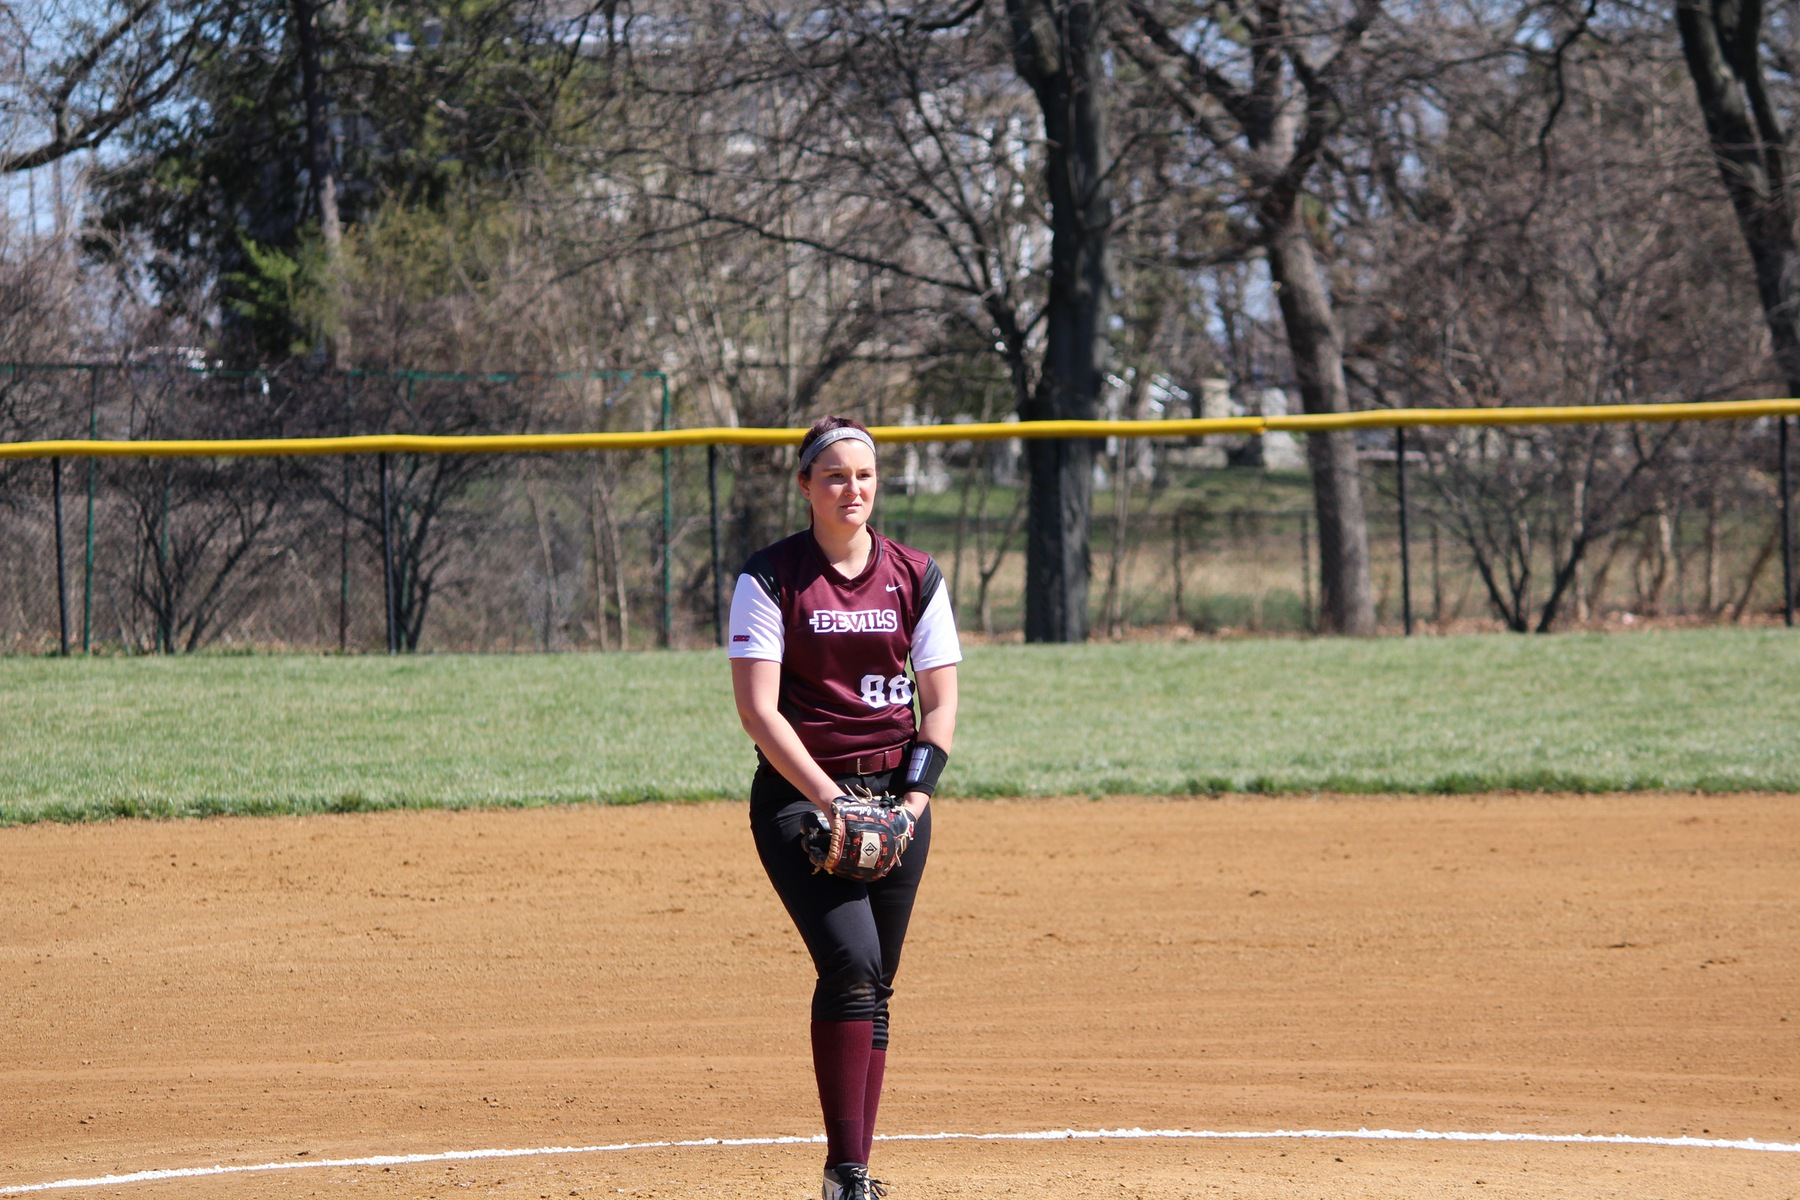 Softball Scores First; Drops Doubleheader to Shippensburg on Sunday